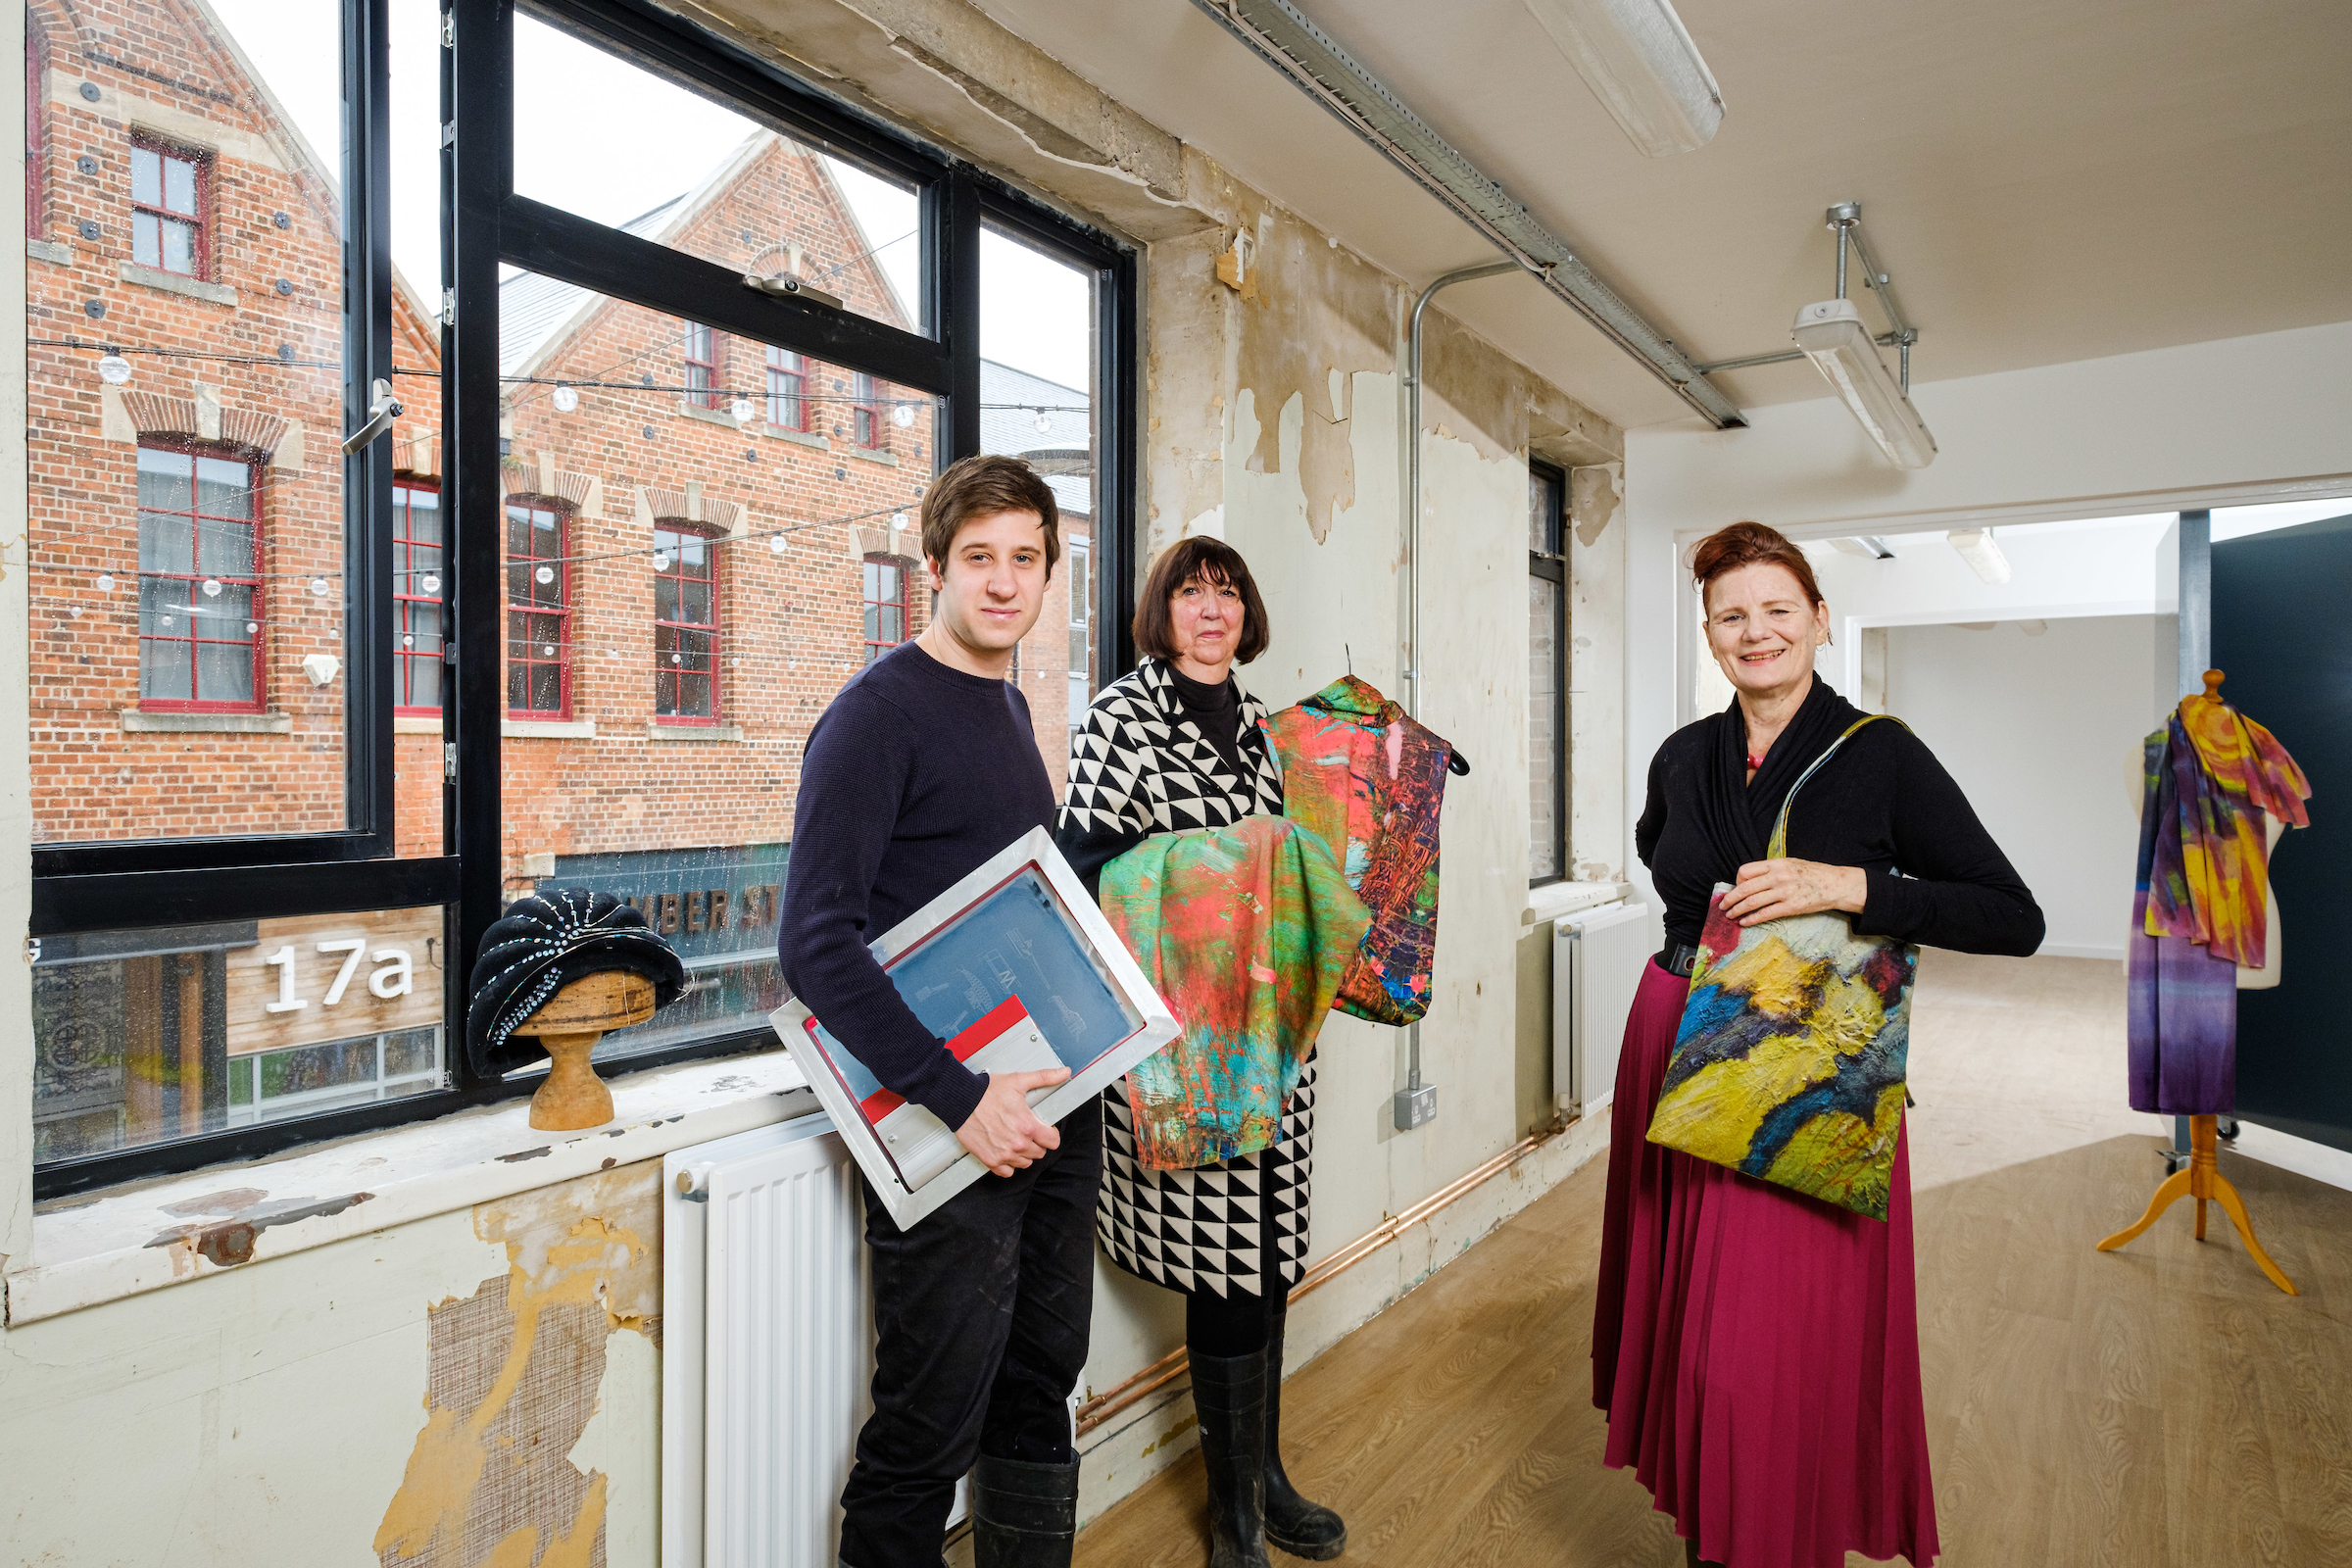 Juice Studios will add to the thriving arts scene already flourishing in the Fruit Market, joining Humber Street Gallery, Studio Eleven, Form Shop & Studio, and Oresome Gallery and Jewellery Workshop.